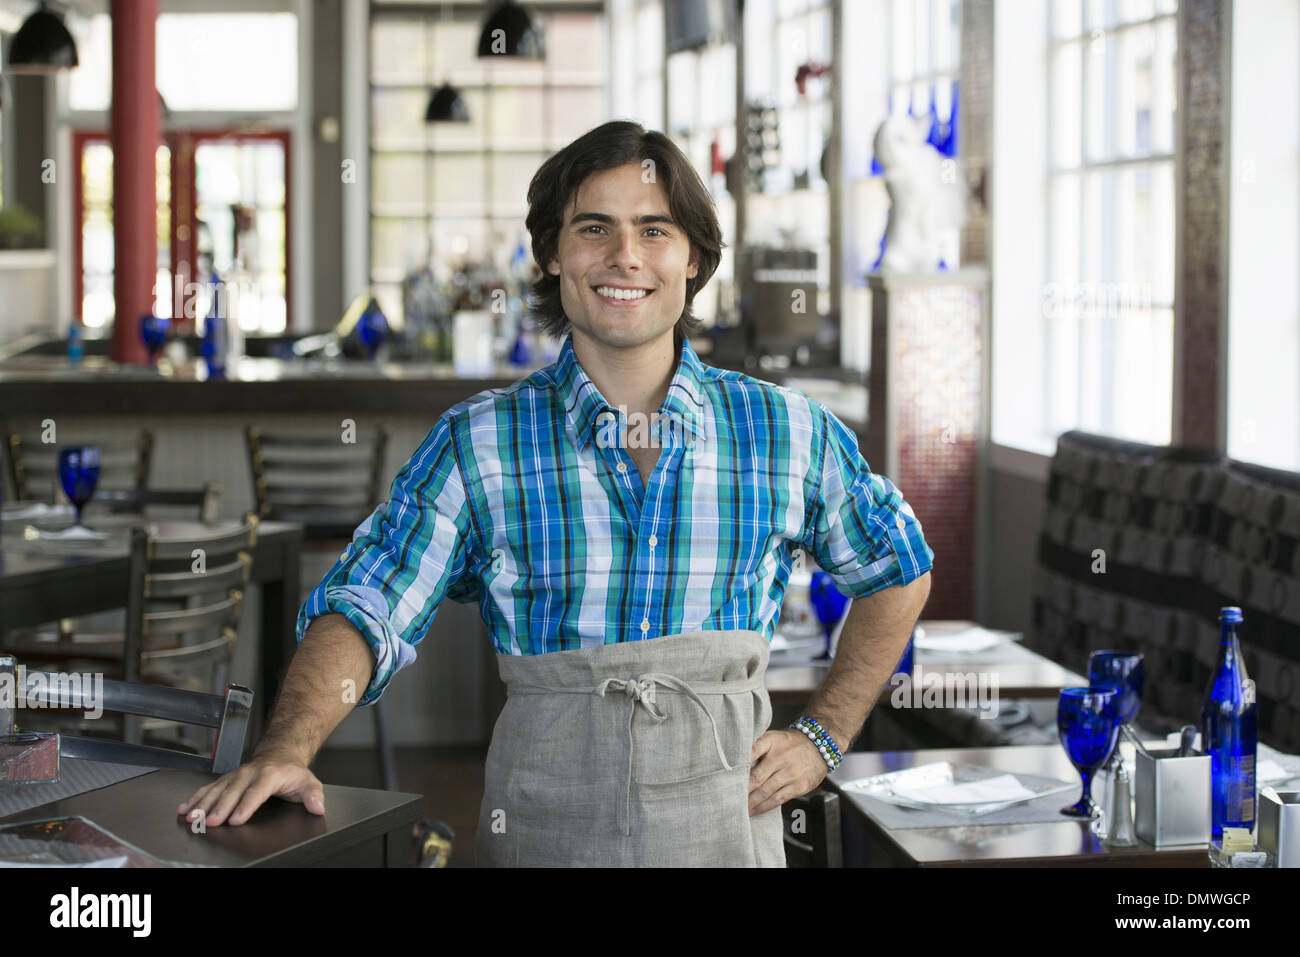 A cafe interior. A waiter in a checked shirt. - Stock Image